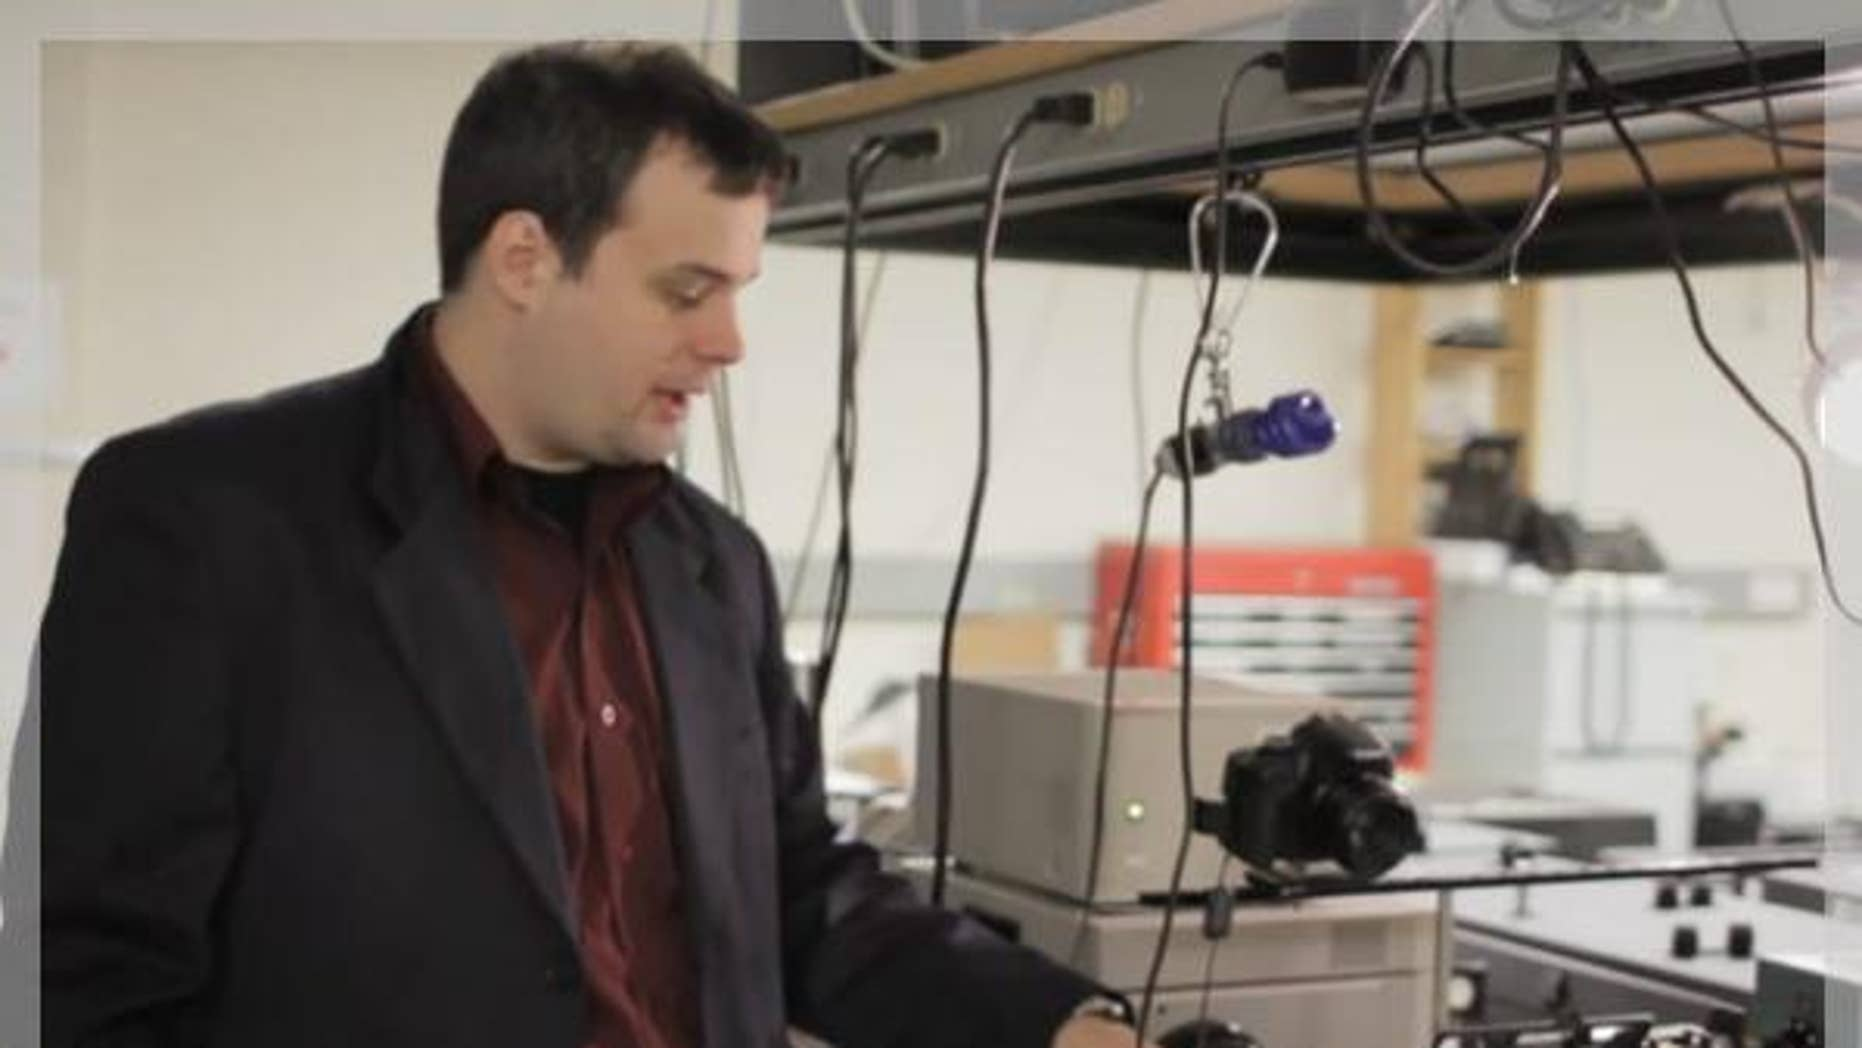 Andreas Velten, a postdoctoral researcher at MIT's Media Lab, explains how the Camera Culture group set up an imaging system capable of taking video at one trillion frames per second.